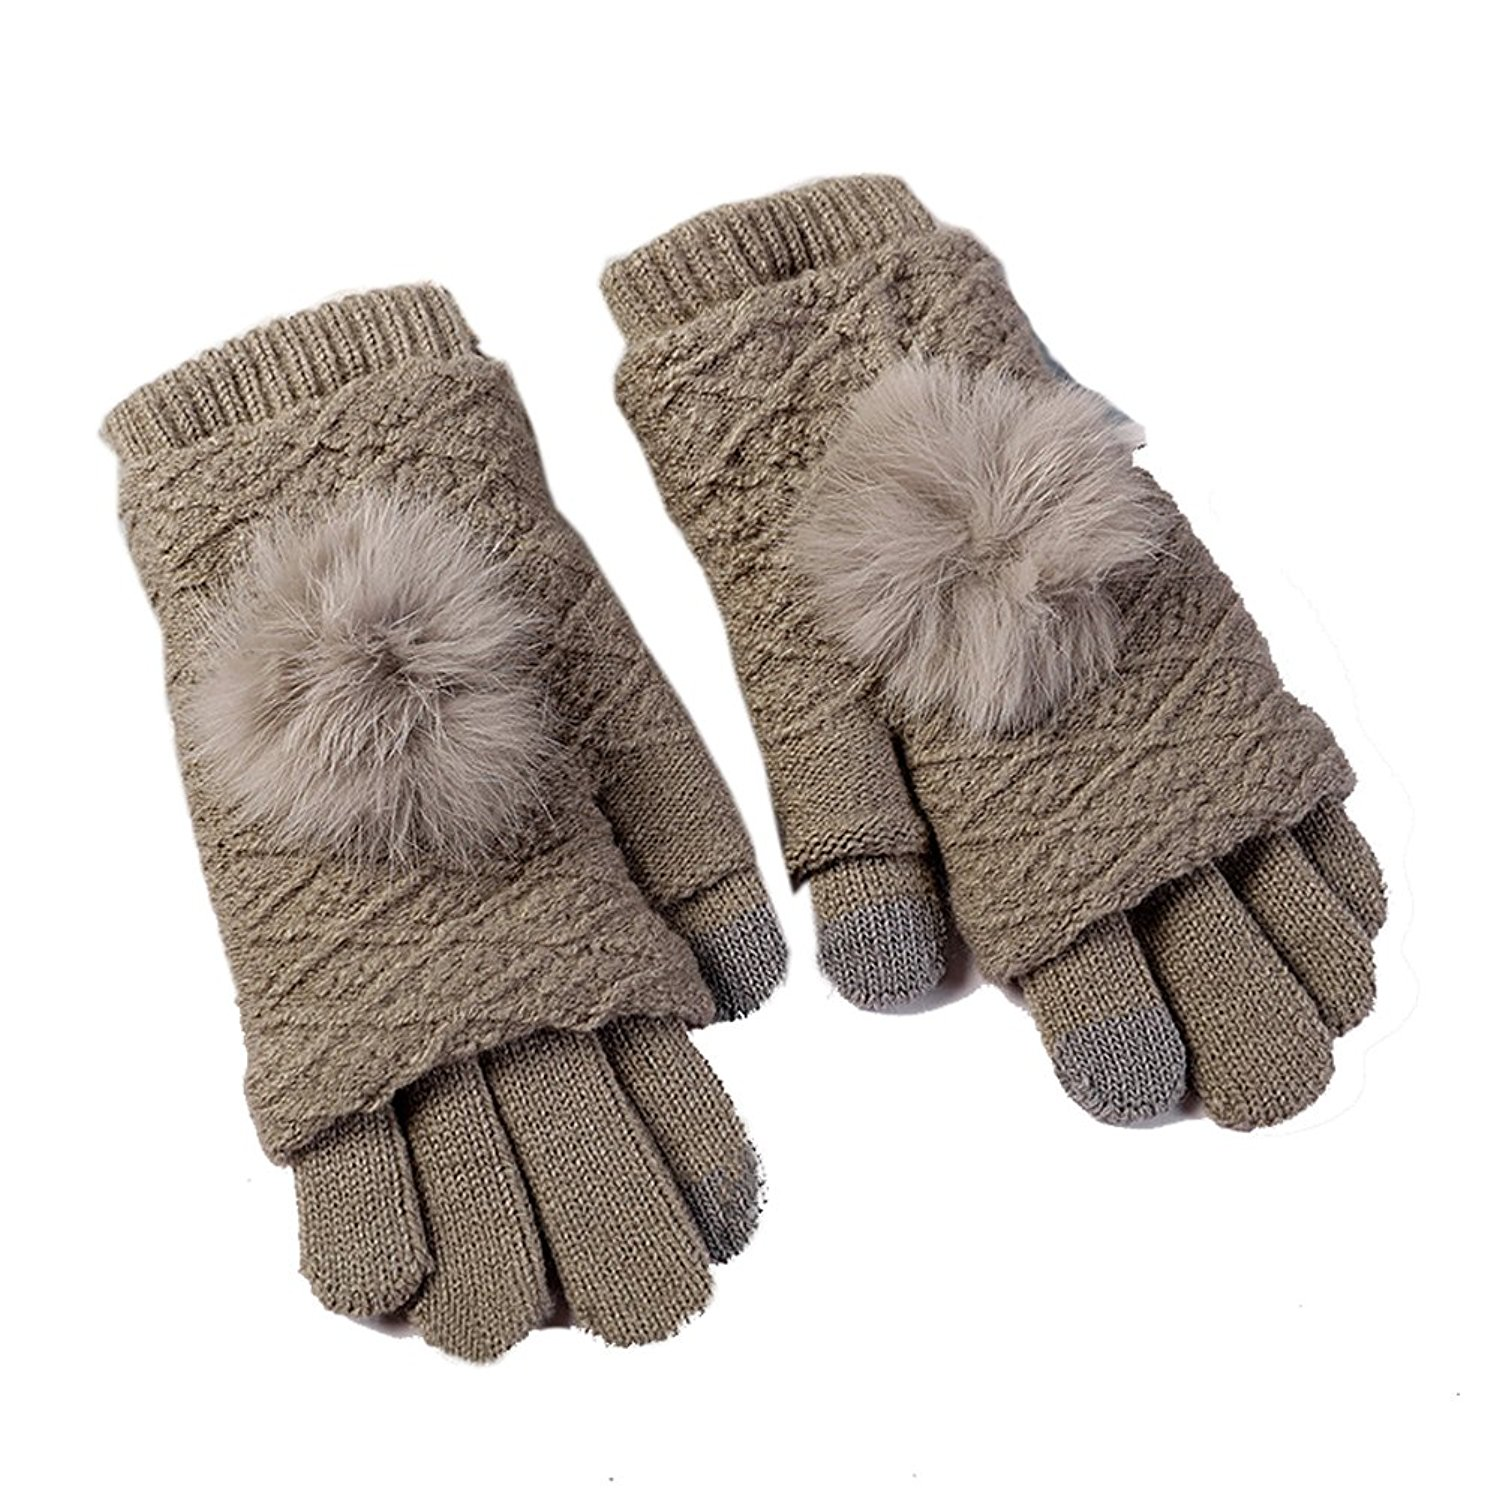 694451a73 Get Quotations · Aodewe Women Winter Warm Touched Screen Glove Thicken  Double Knit Wool Glove For Ladies Girls